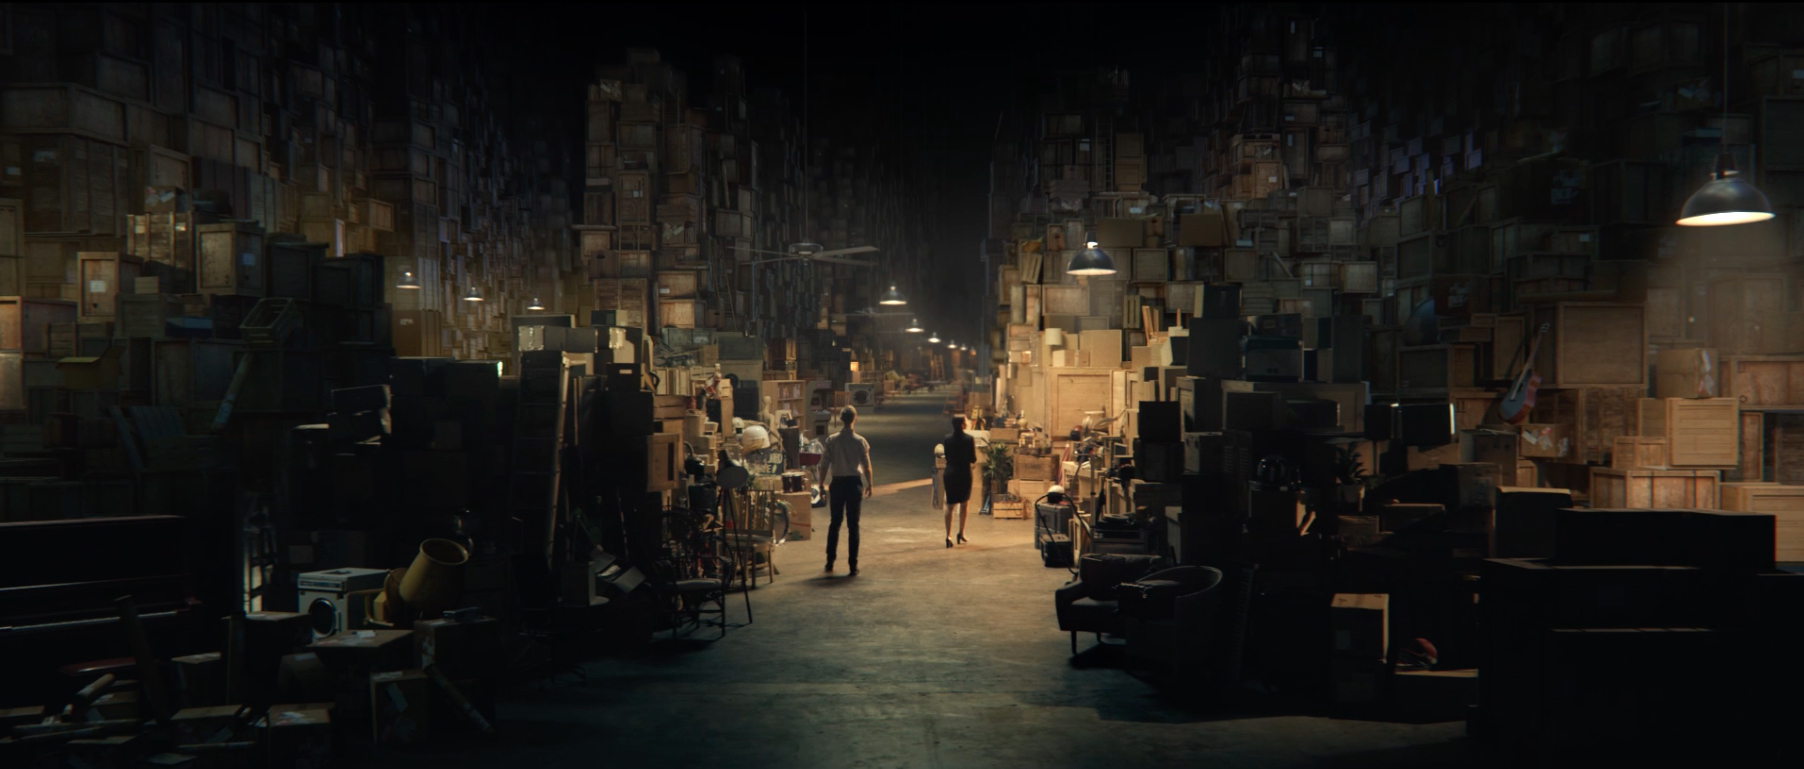 H&R Block launches new 'The Land of Lost Tax Deductions' campaign via The Works and PHD